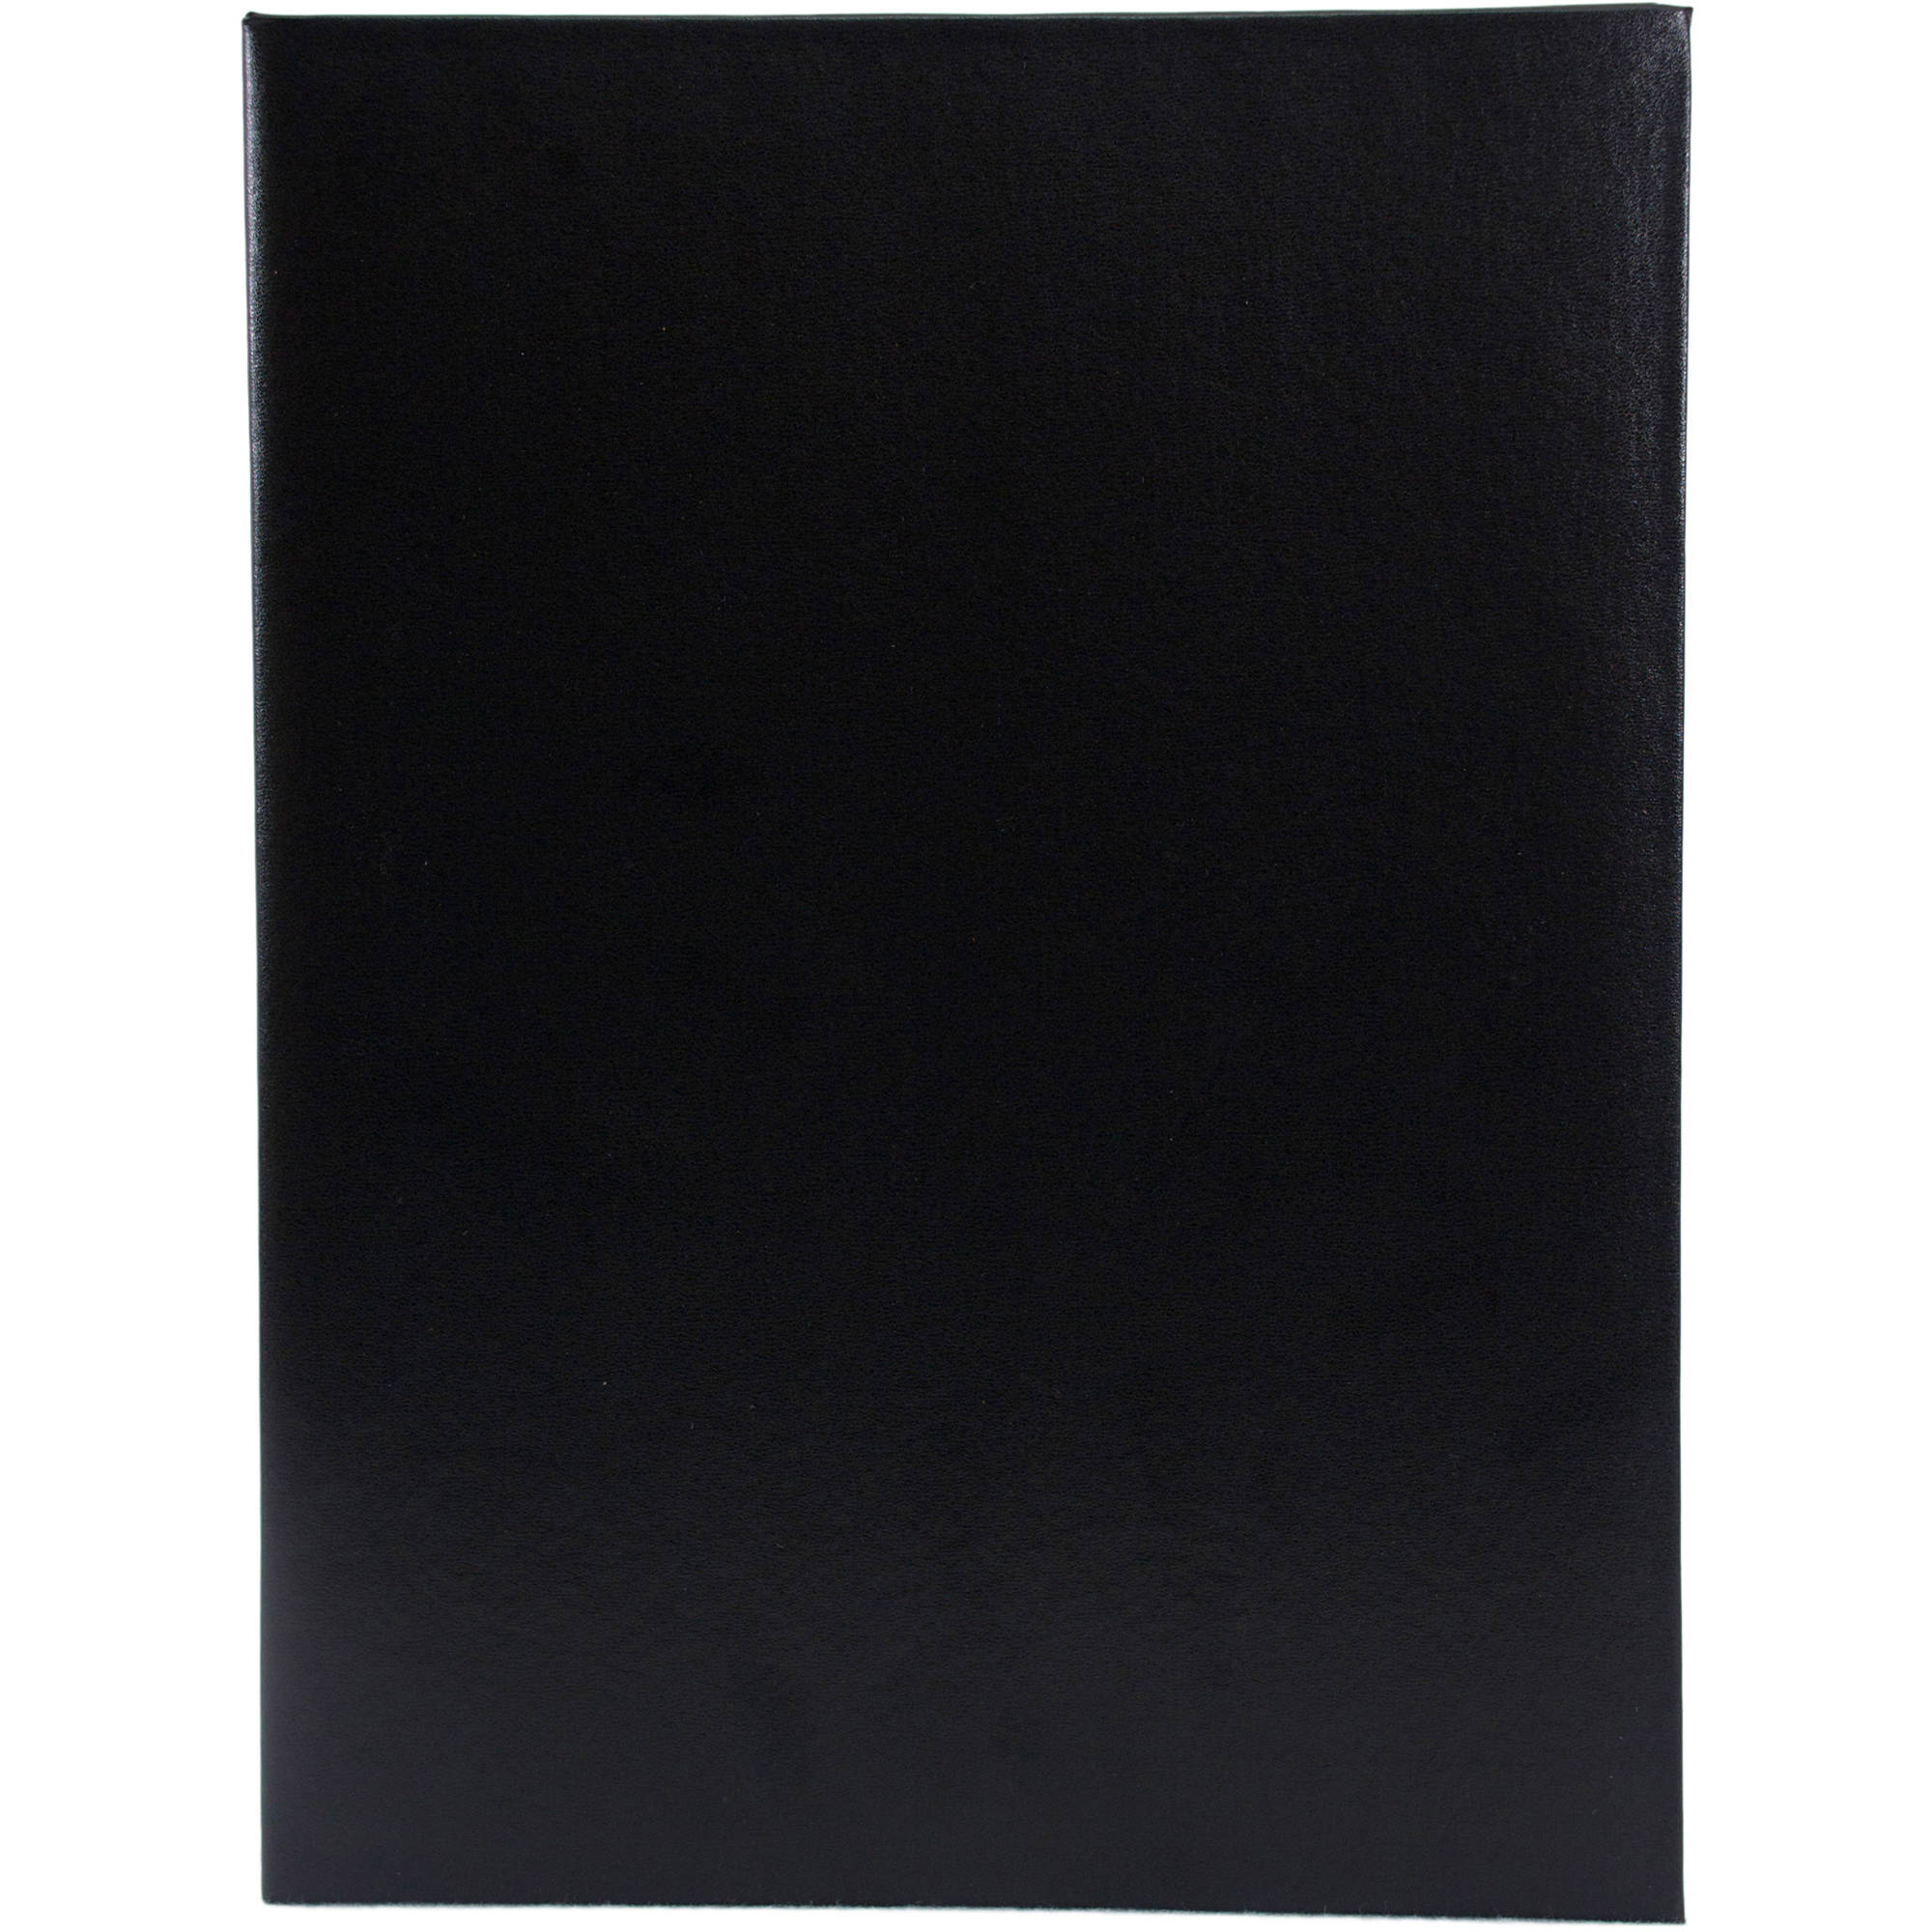 Pinnacle Frames And Accents 2 Up Black Photo Album Walmartcom